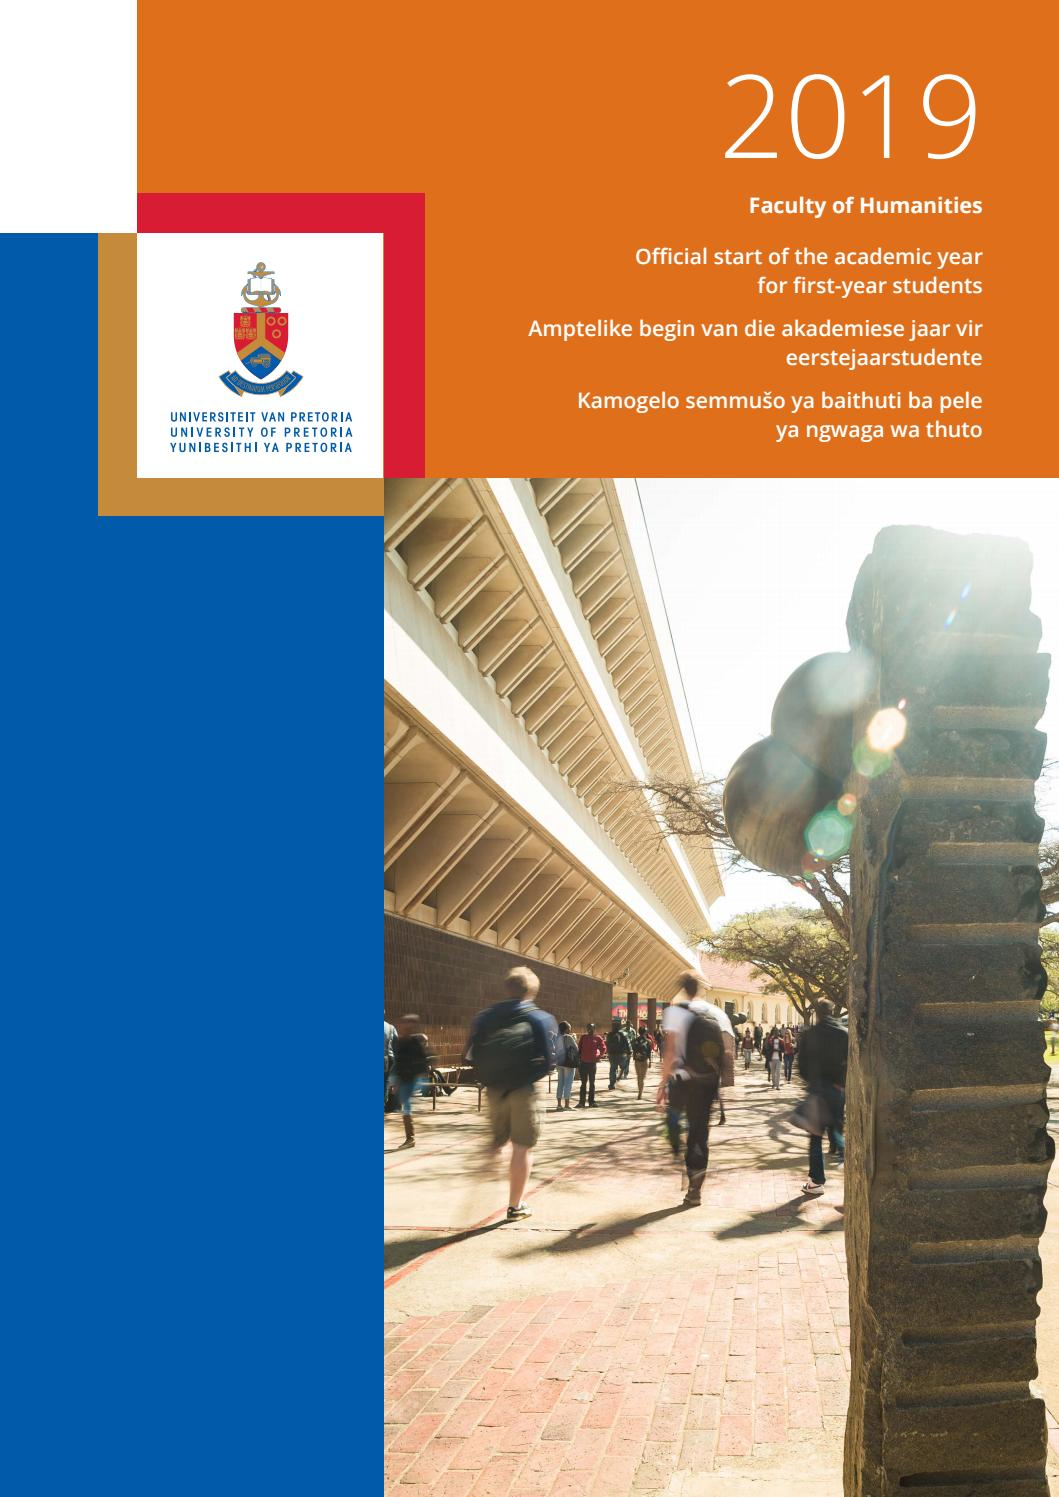 Faculty Of Humanities Orientation Programme For 2019 By University Of Pretoria Issuu